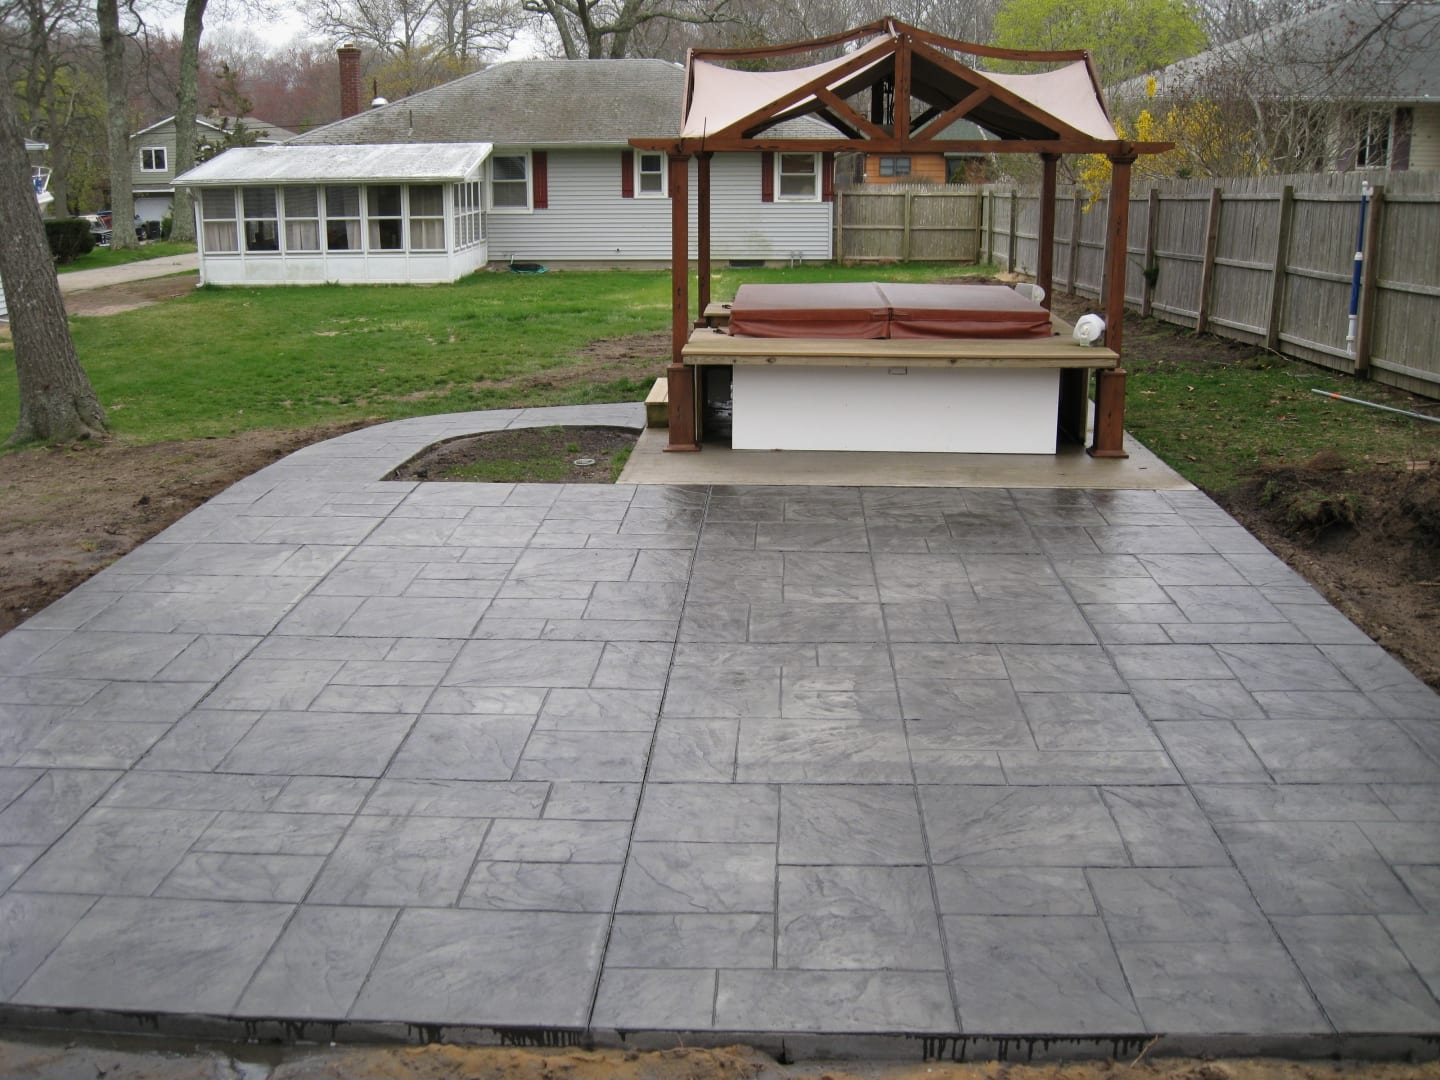 High Quality Random Slate Concrete Patio For A Hot Tub